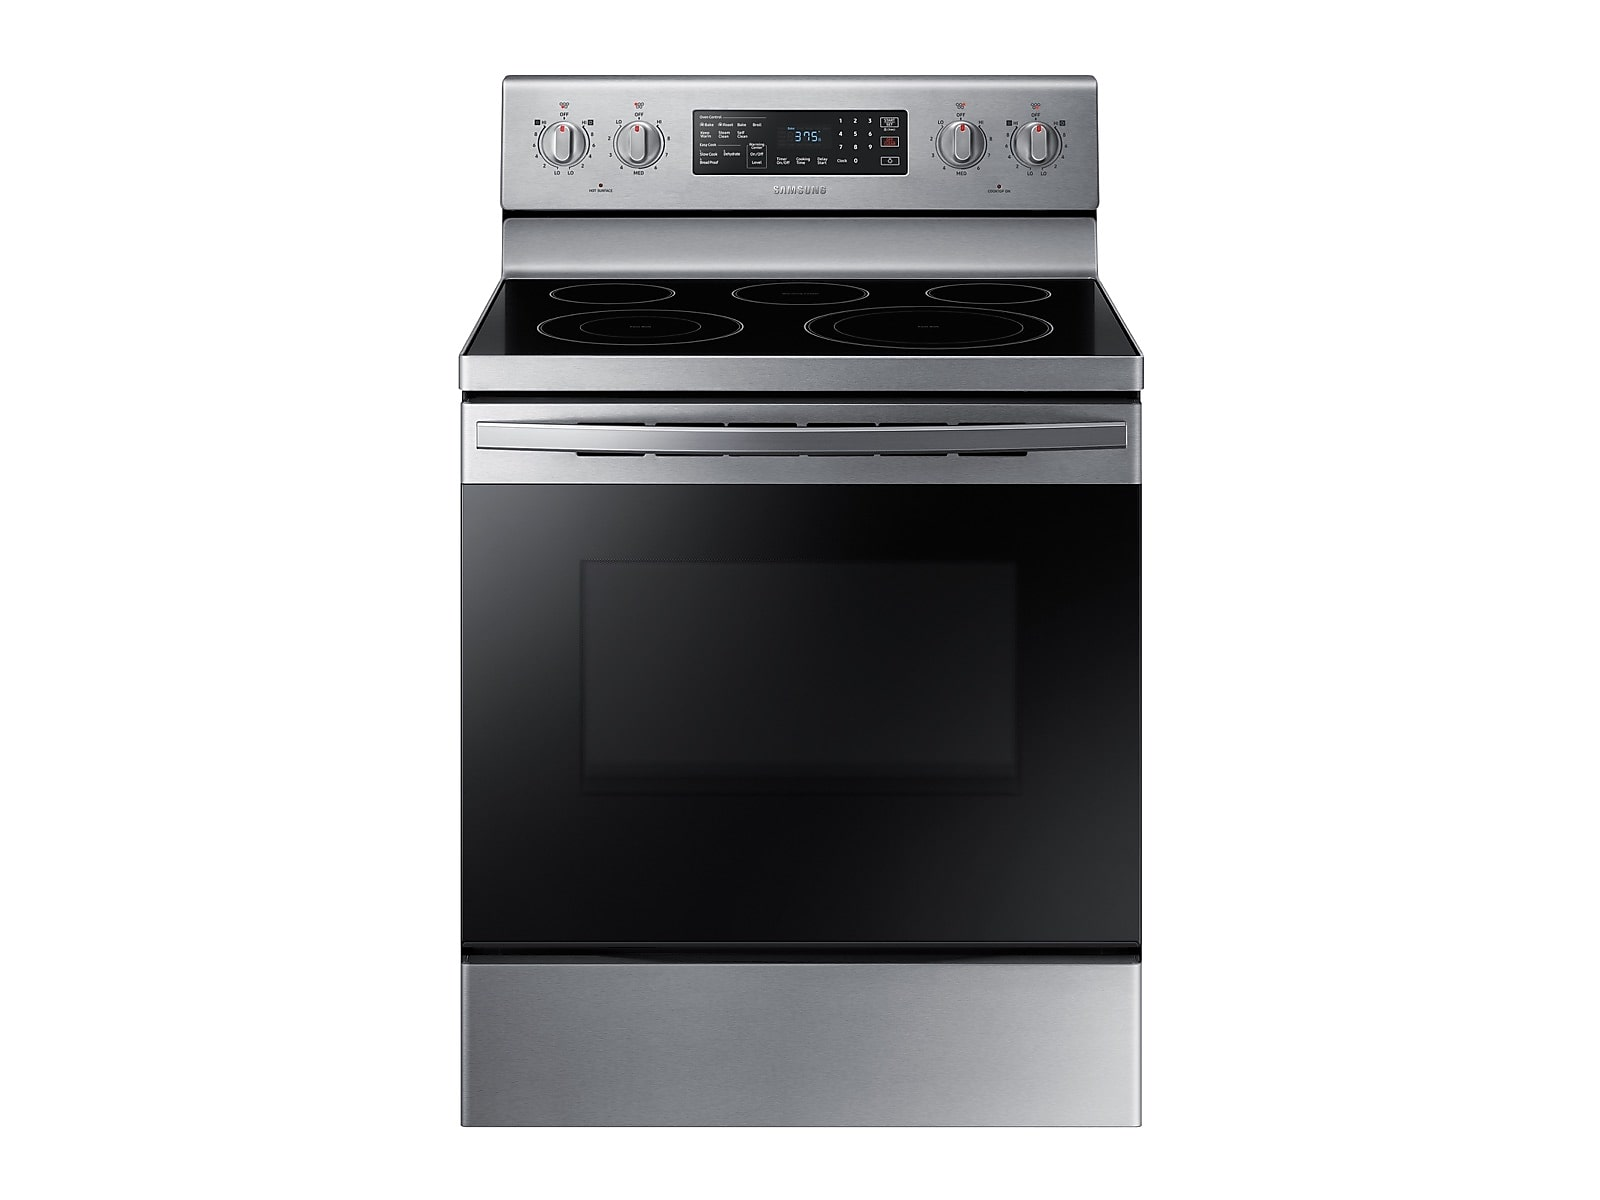 Samsung 5.9 cu. ft. Freestanding Electric Range with Convection in Stainless Steel(NE59R4321SS/AA)